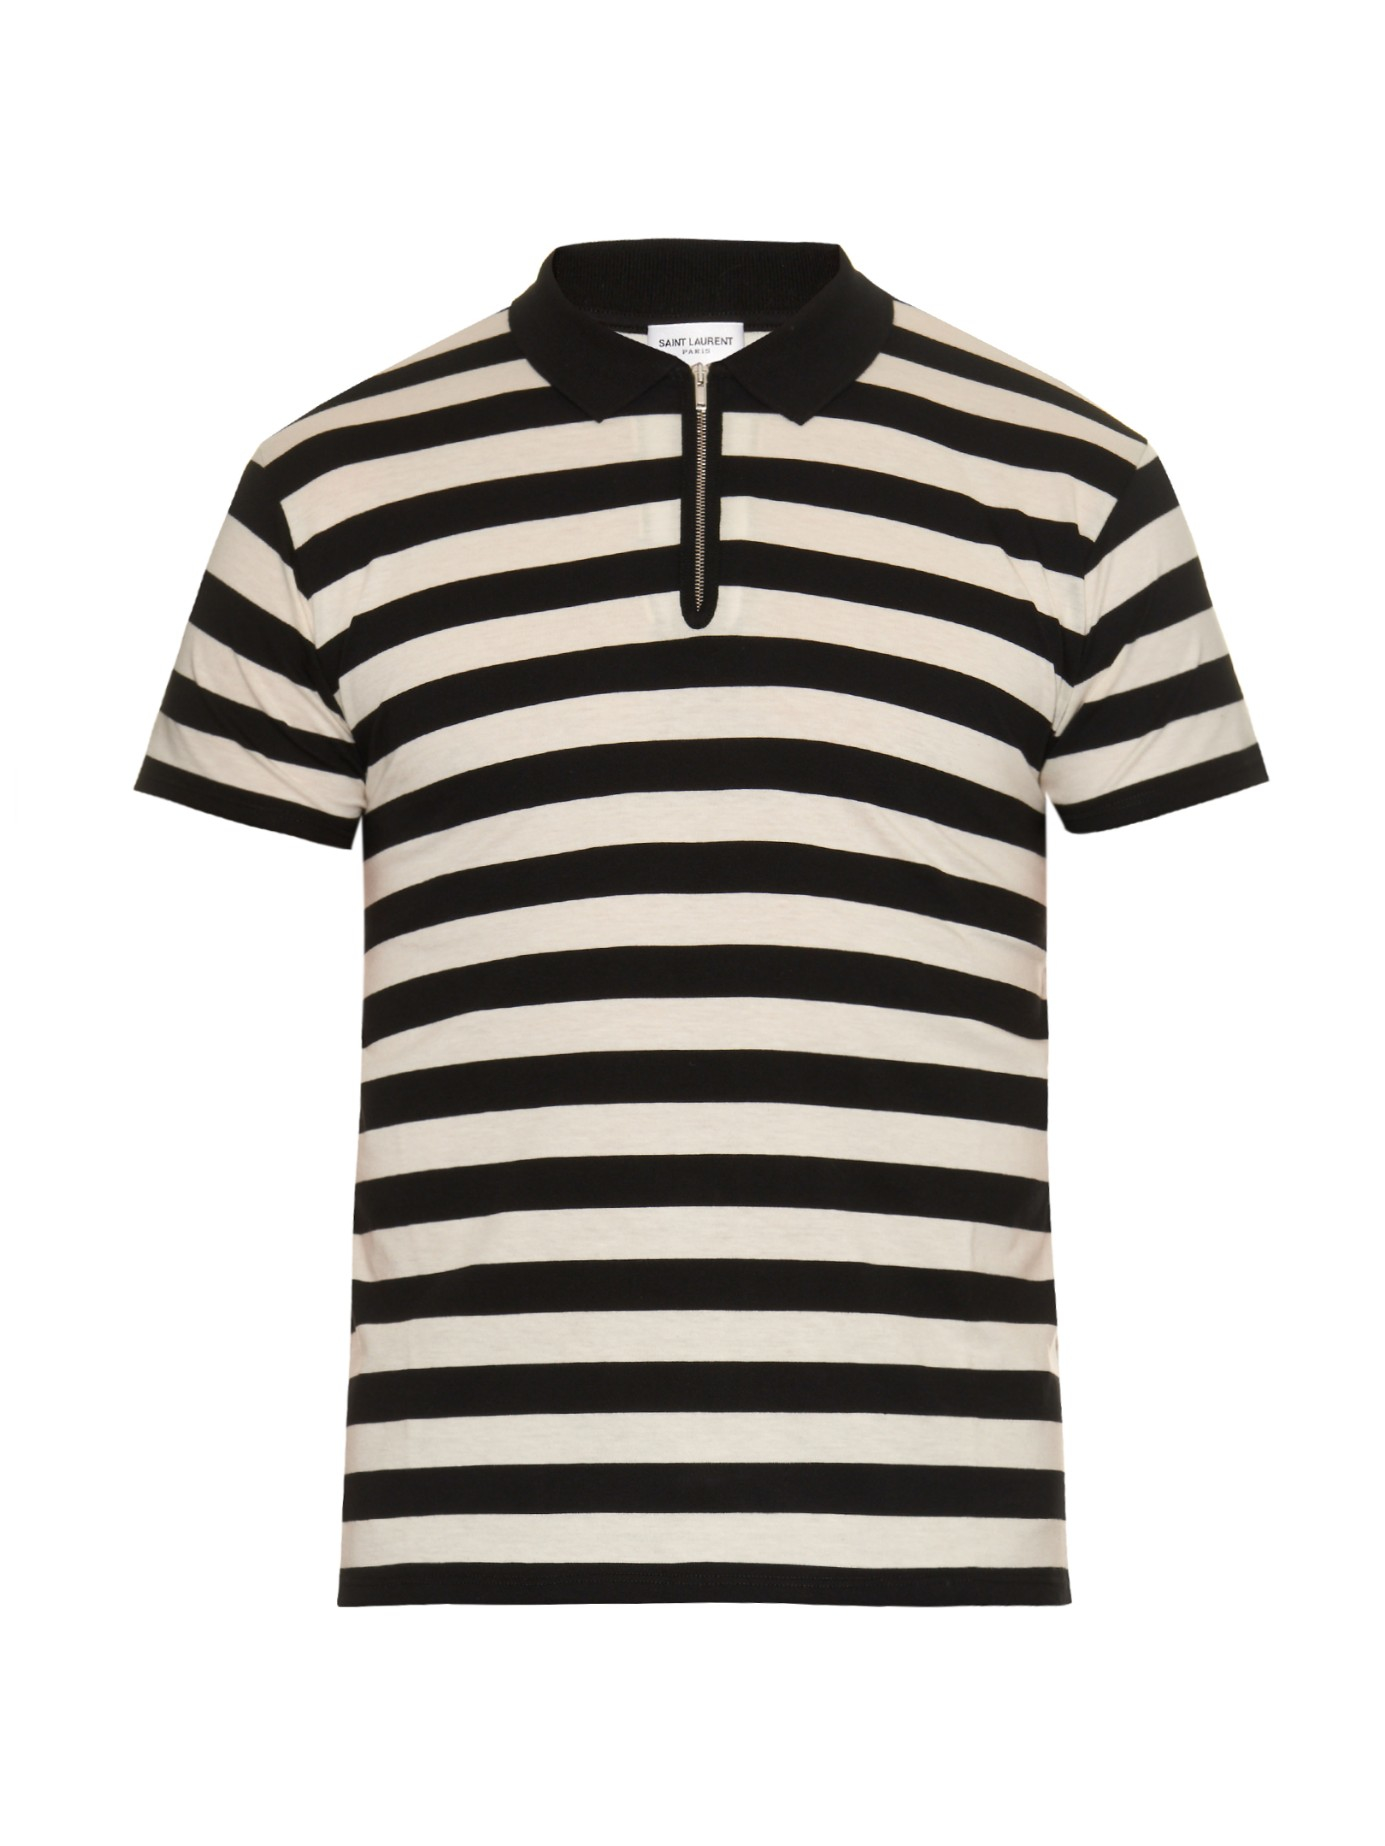 Lyst saint laurent striped cotton polo shirt in black for White shirt with black